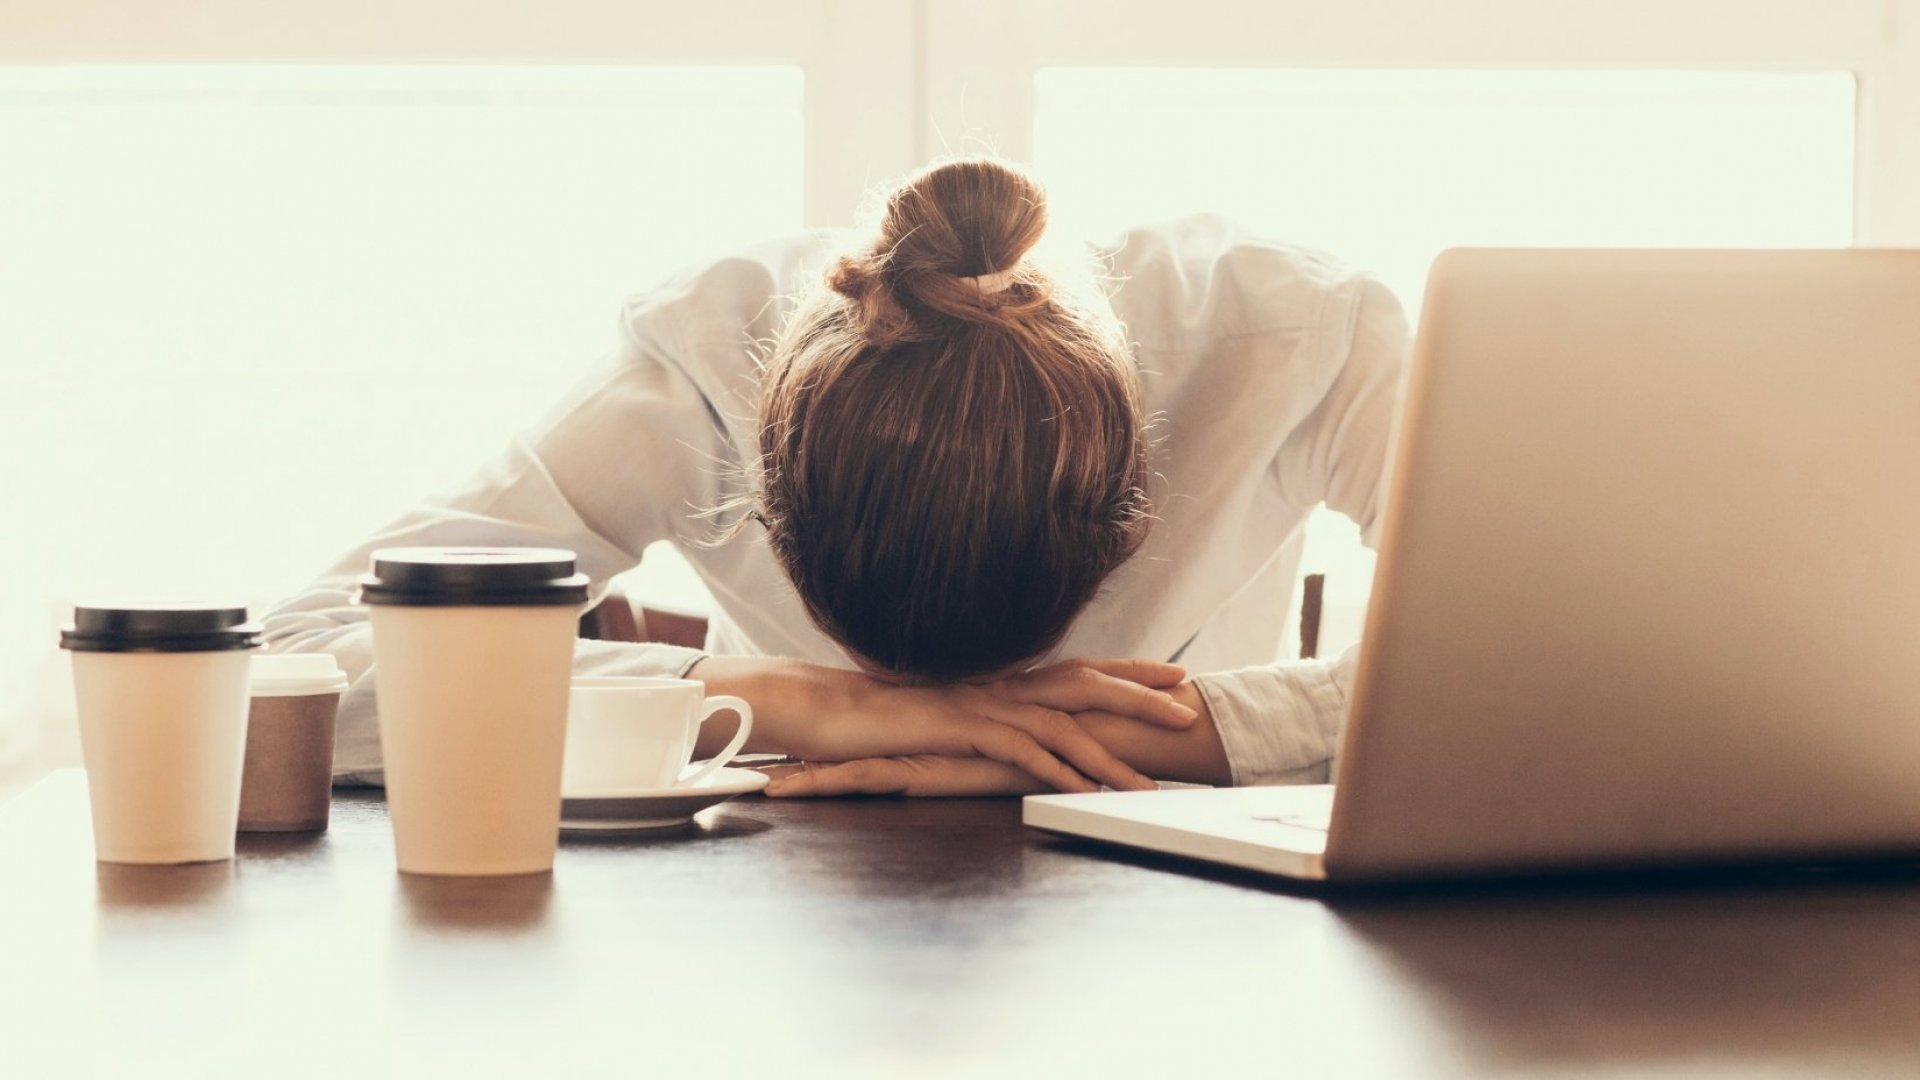 Why Are Smart People So Miserable?